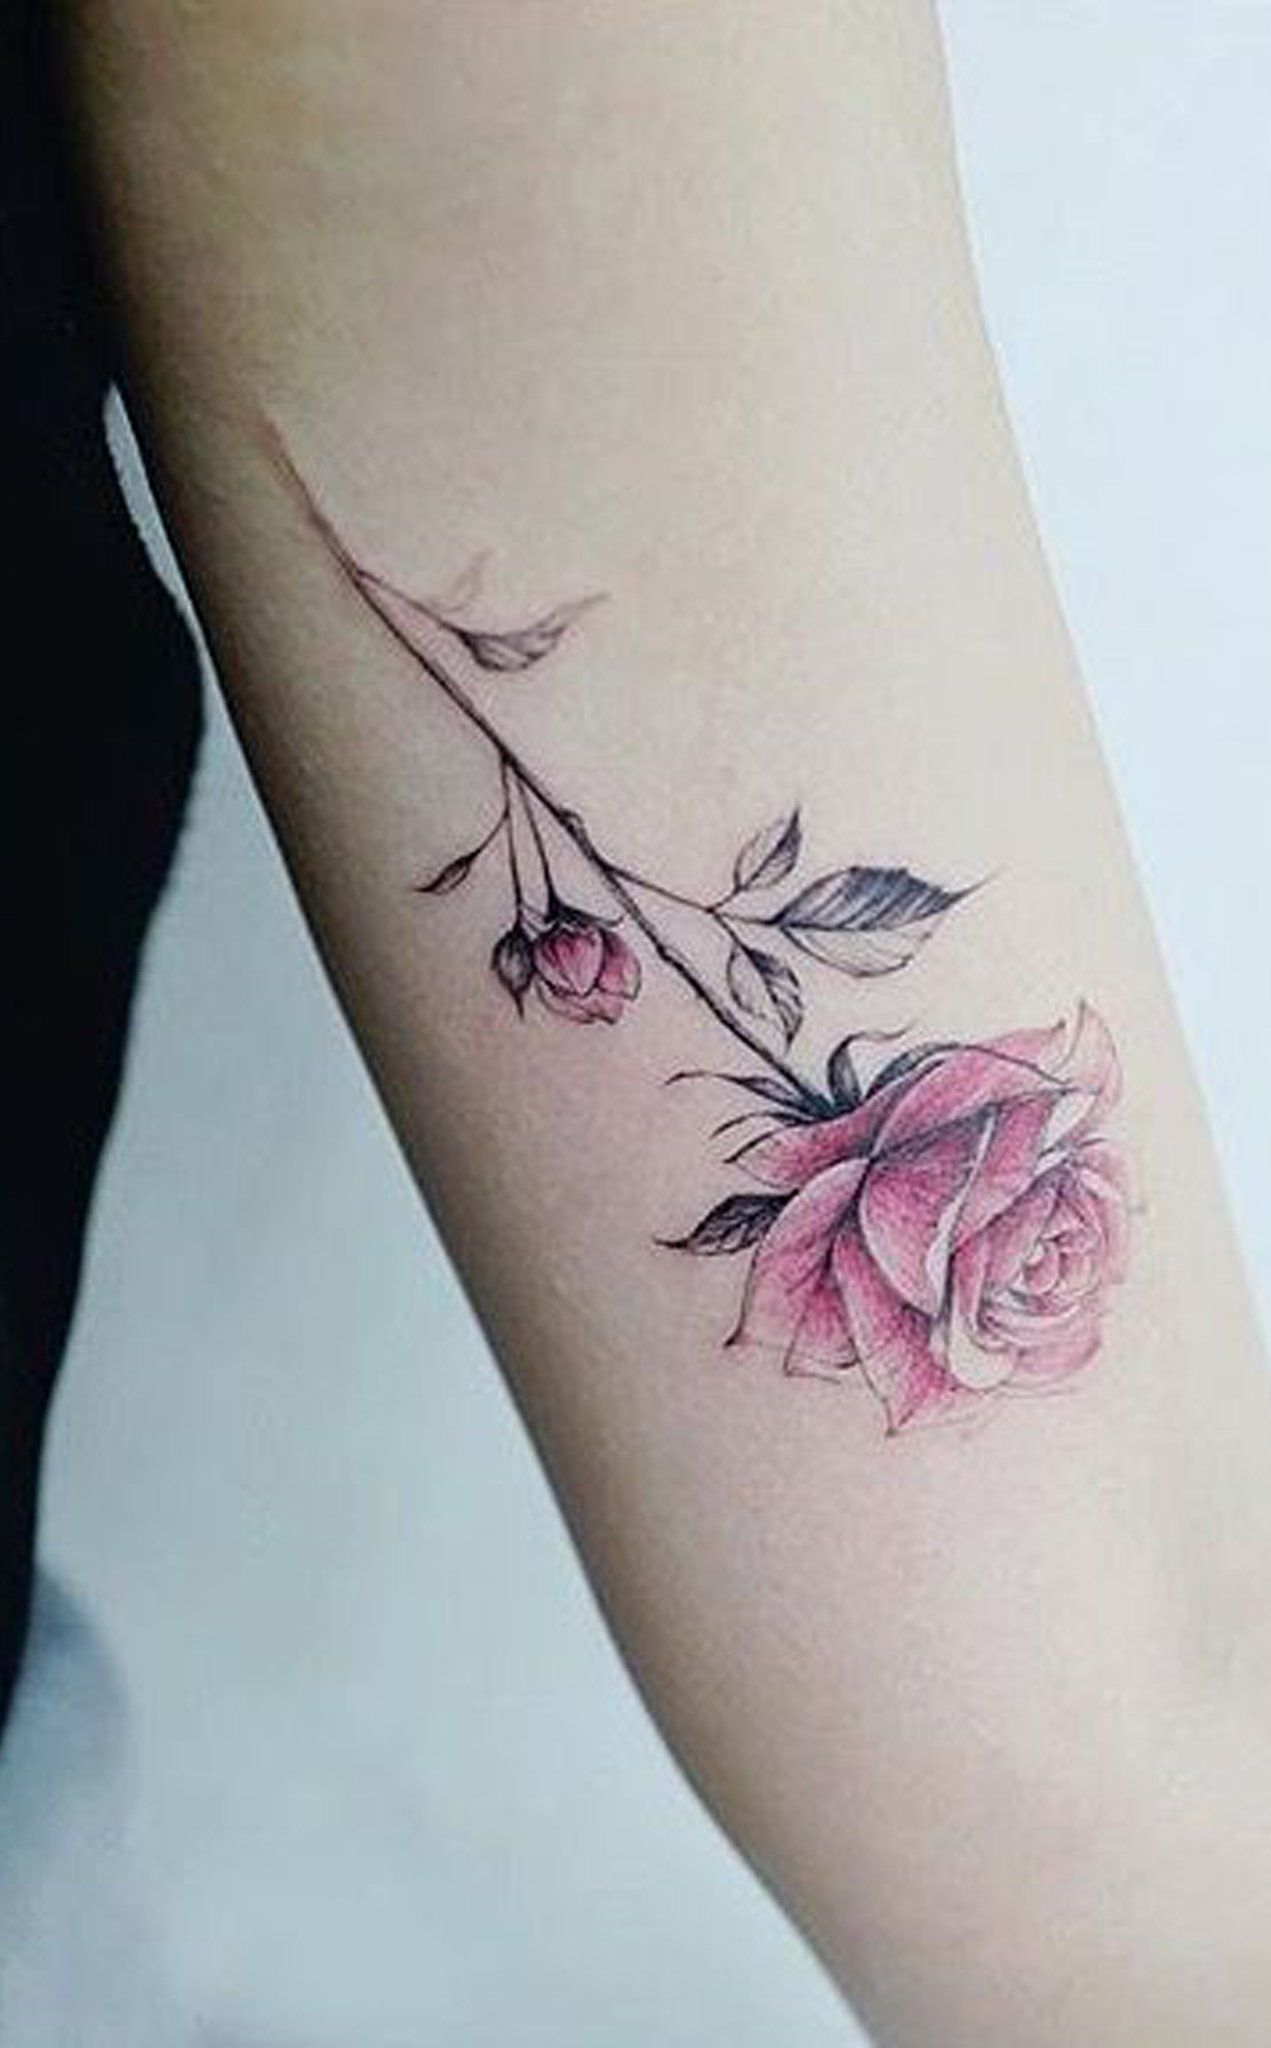 Watercolor Rose Arm Tattoo Ideas For Women